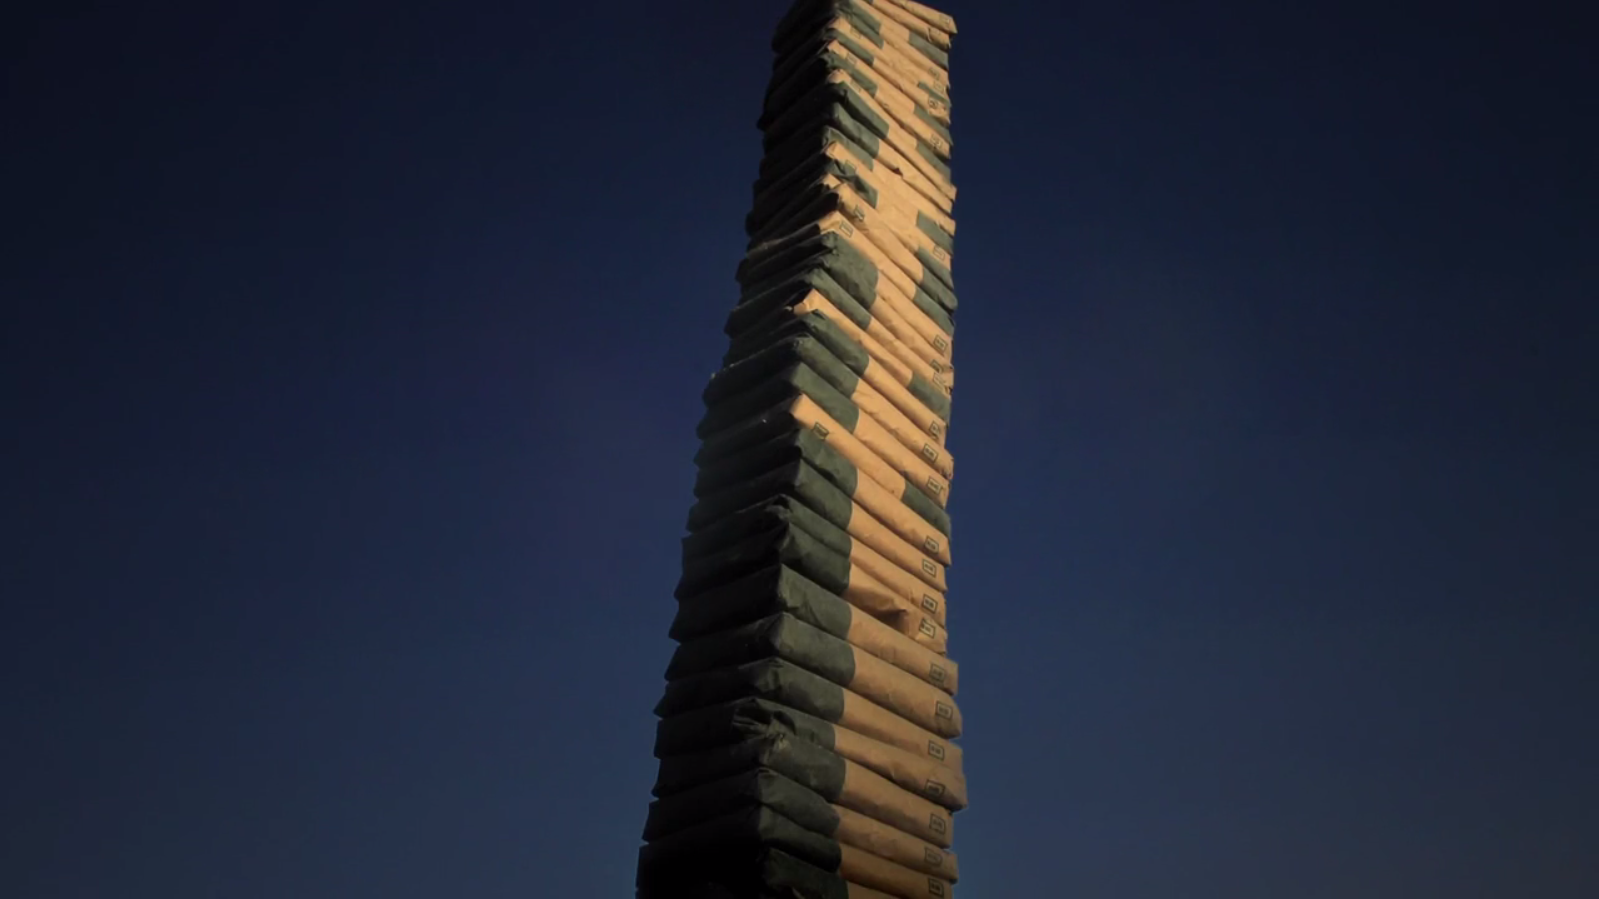 """Film still from """"Coluna Infinita (Infinite Column)"""" by Lais Myrrha, image shows a stack of cement bags marked with half with a dark color and half with a light color reaching vertically out of frame"""